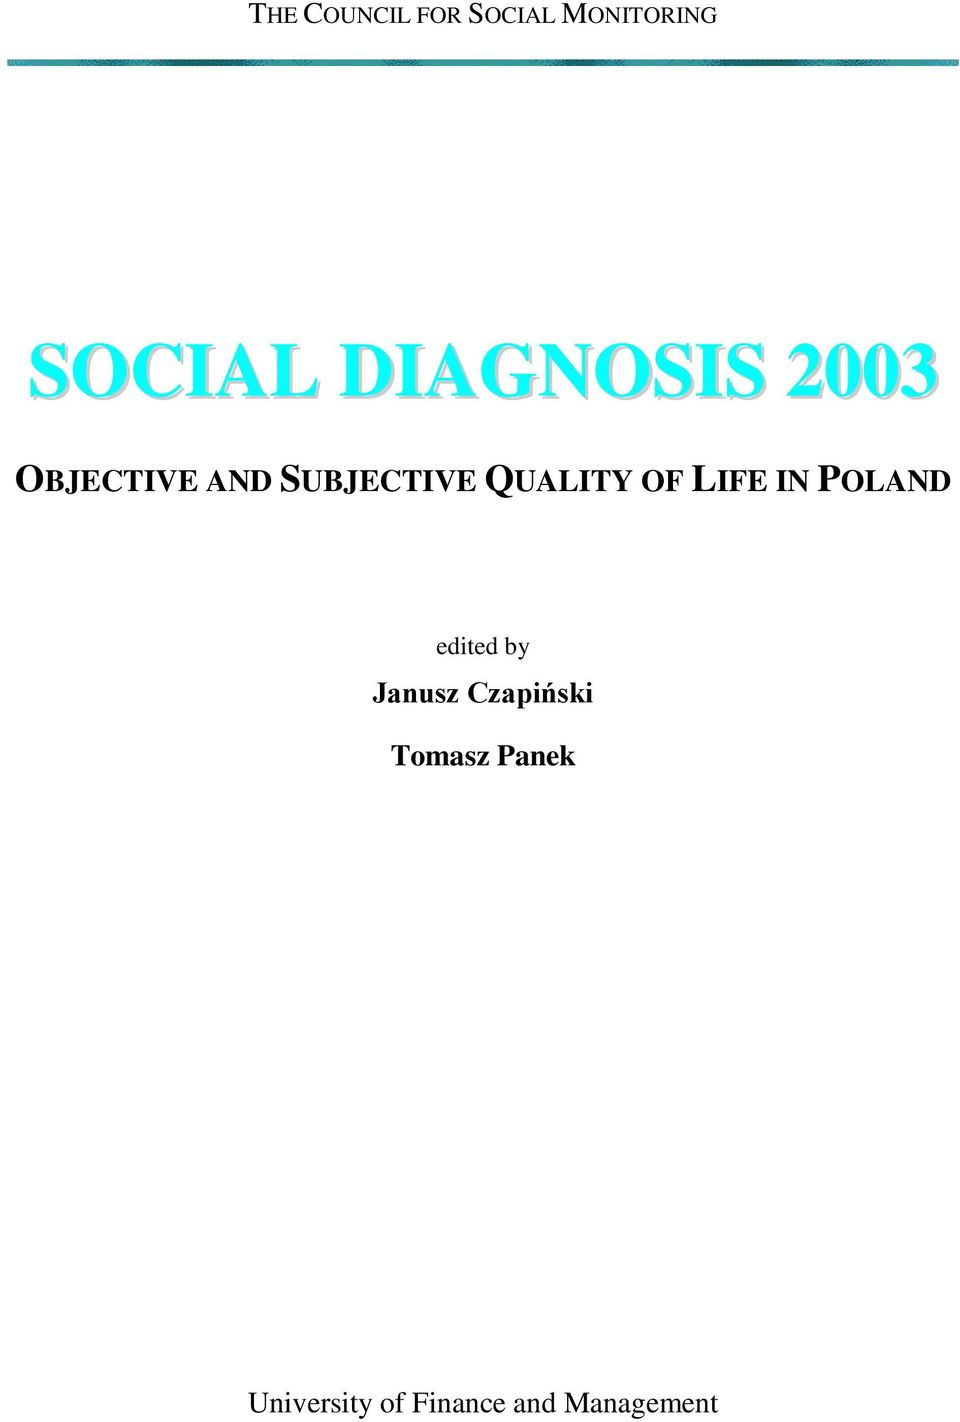 QUALITY OF LIFE IN POLAND edited by Janusz